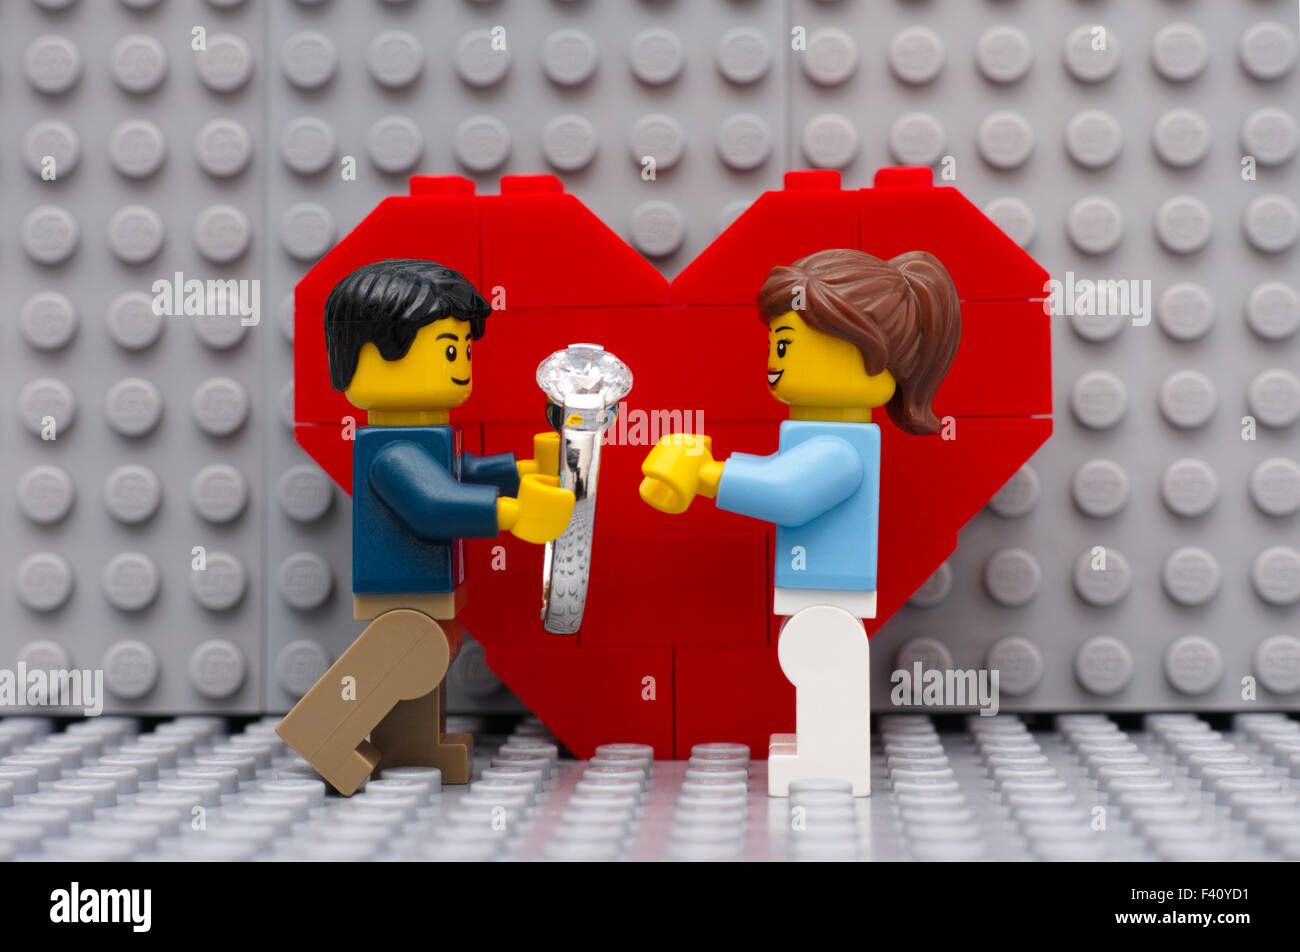 Lego man with ring makes marriage proposal to his girl standing in front of the heart on gray Lego baseplates. - Stock Image